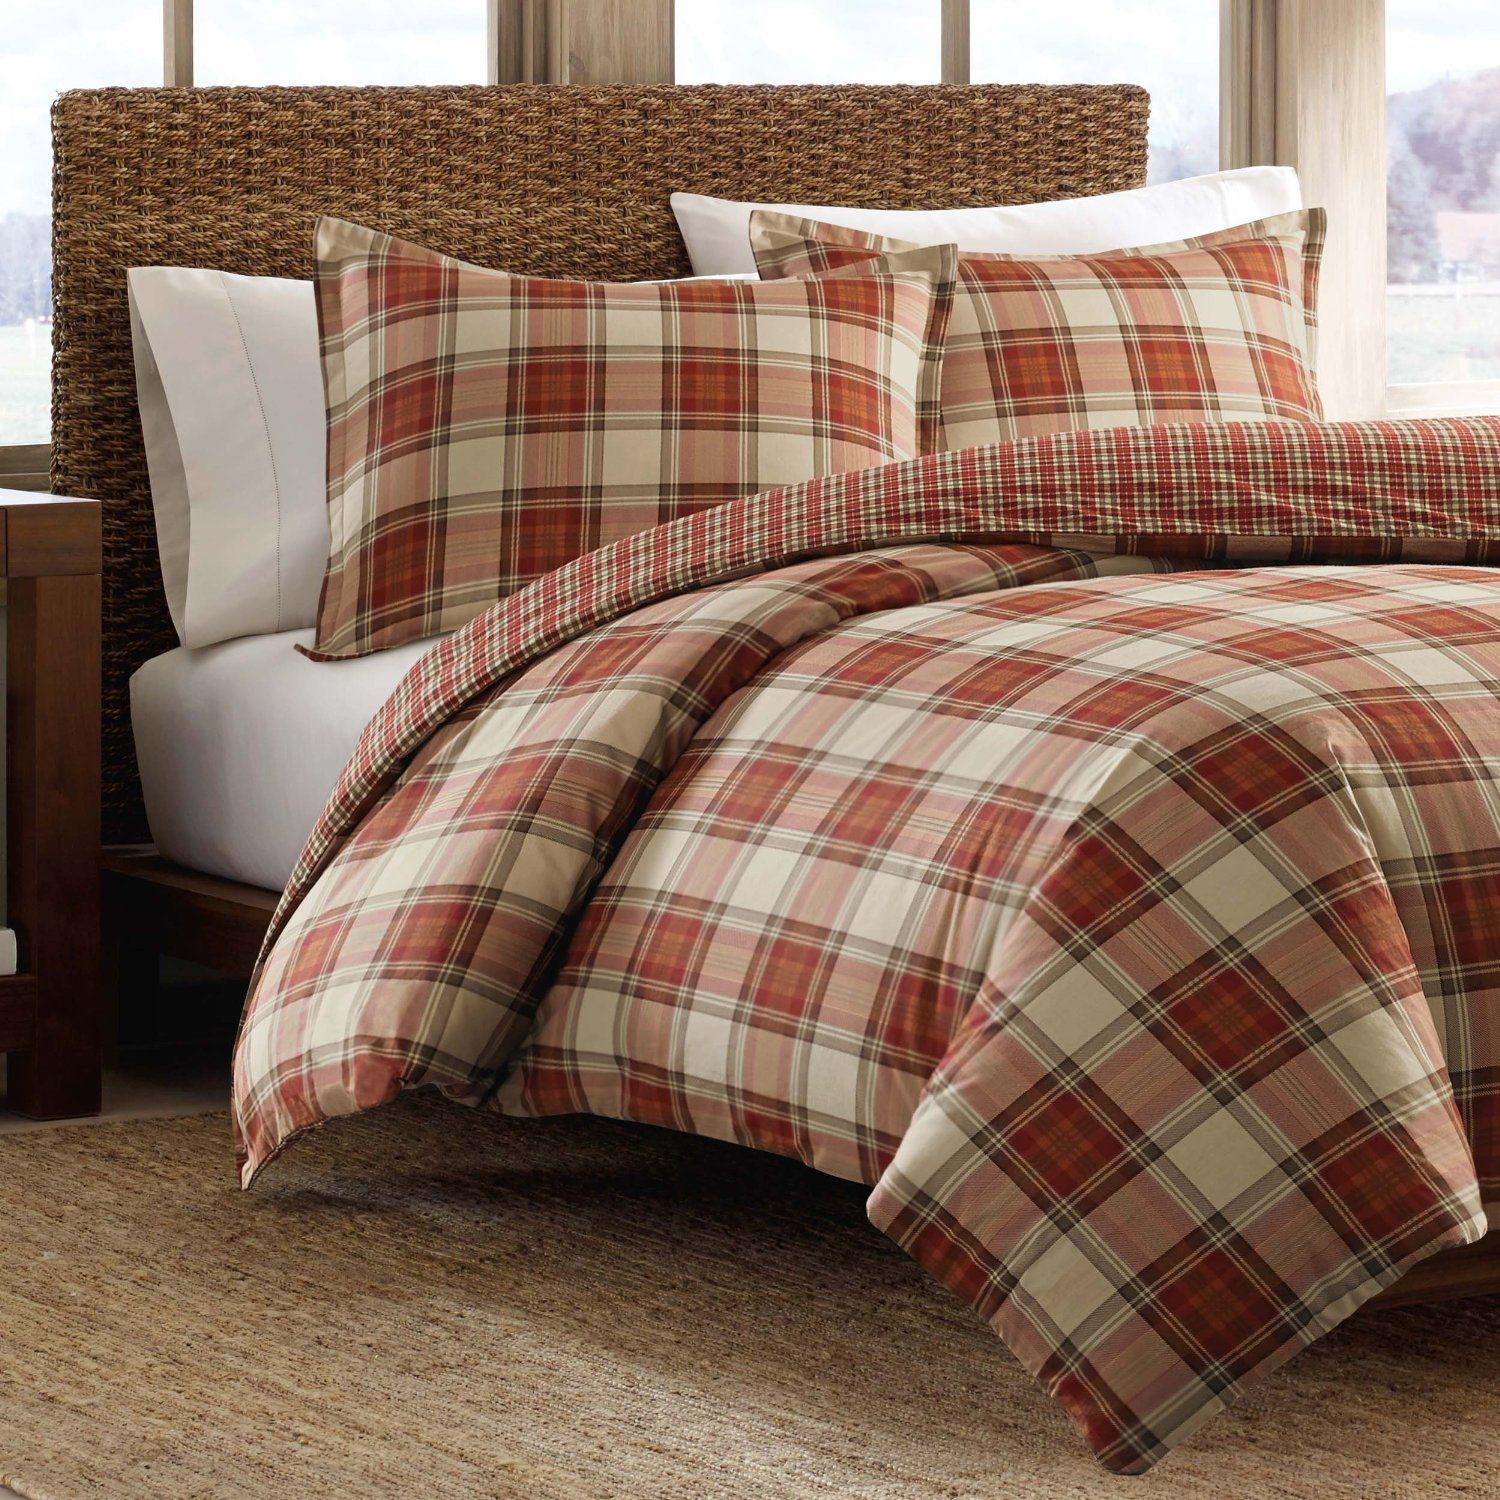 penneys cover check red snowflake buffalo full info duvet plaid kohphiphi size flannel page set